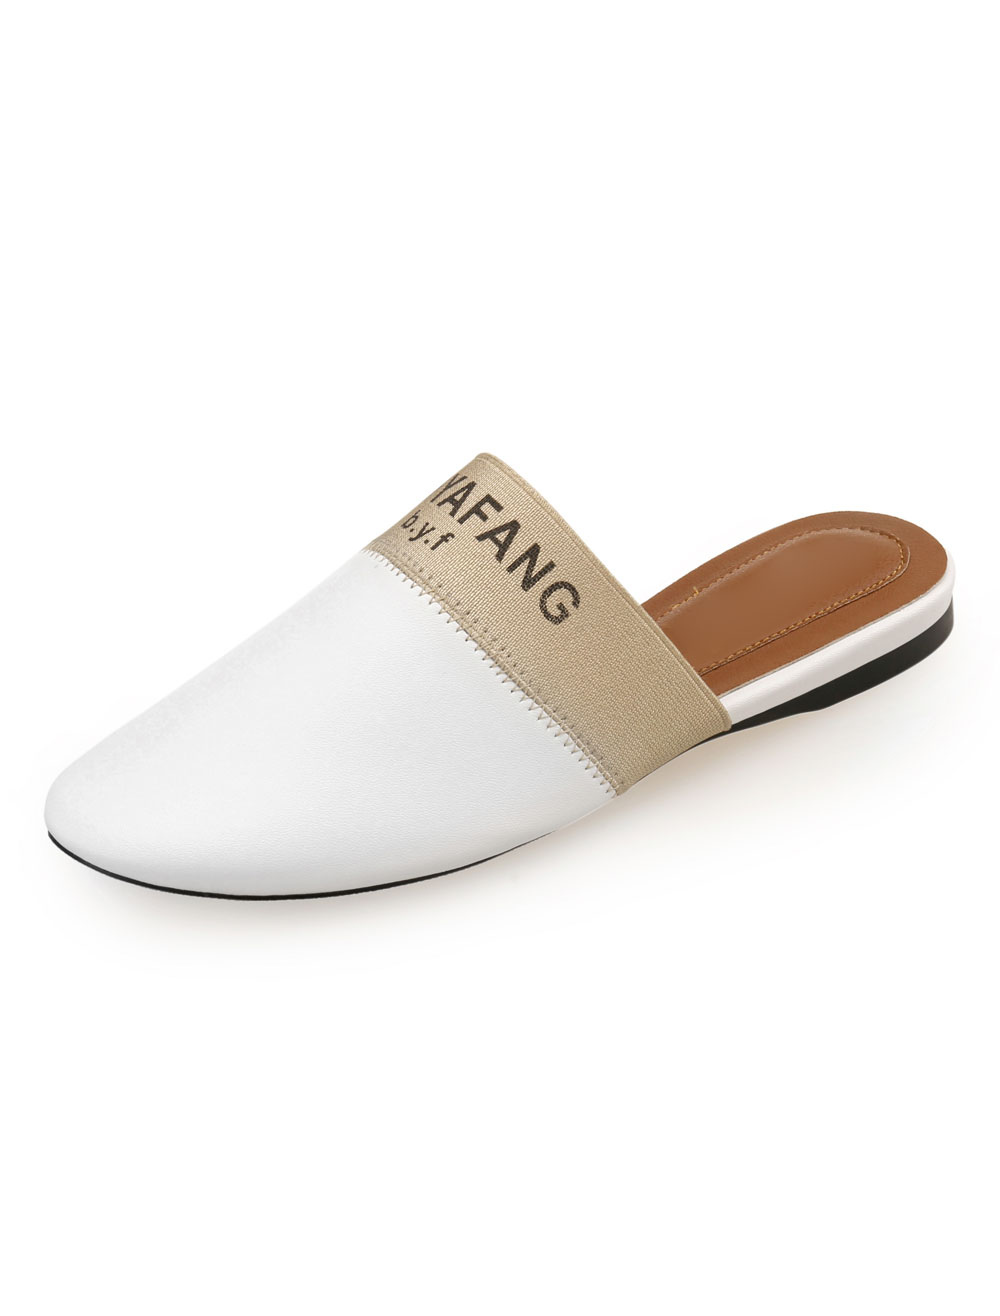 White Mules Shoes Round Toe Letters